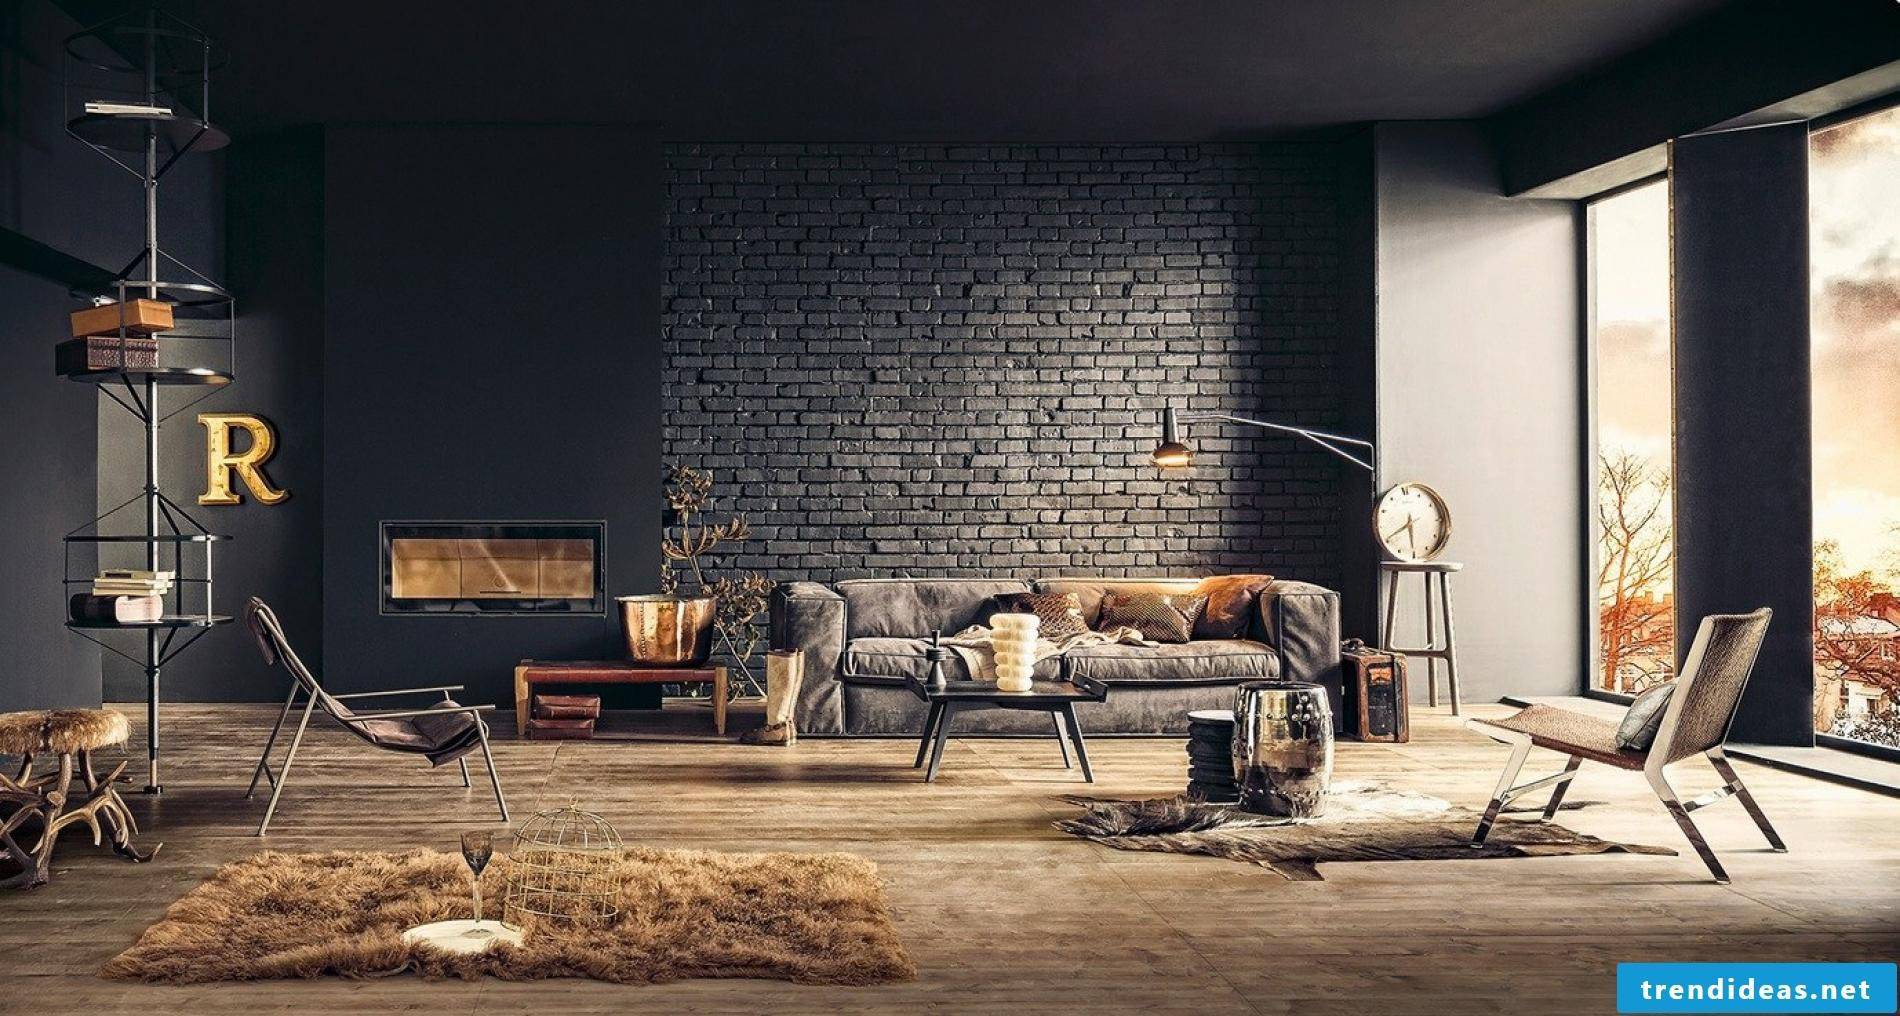 Industrial chic seems like a home decor style that finds a real beauty in the utilitarian and aged look.